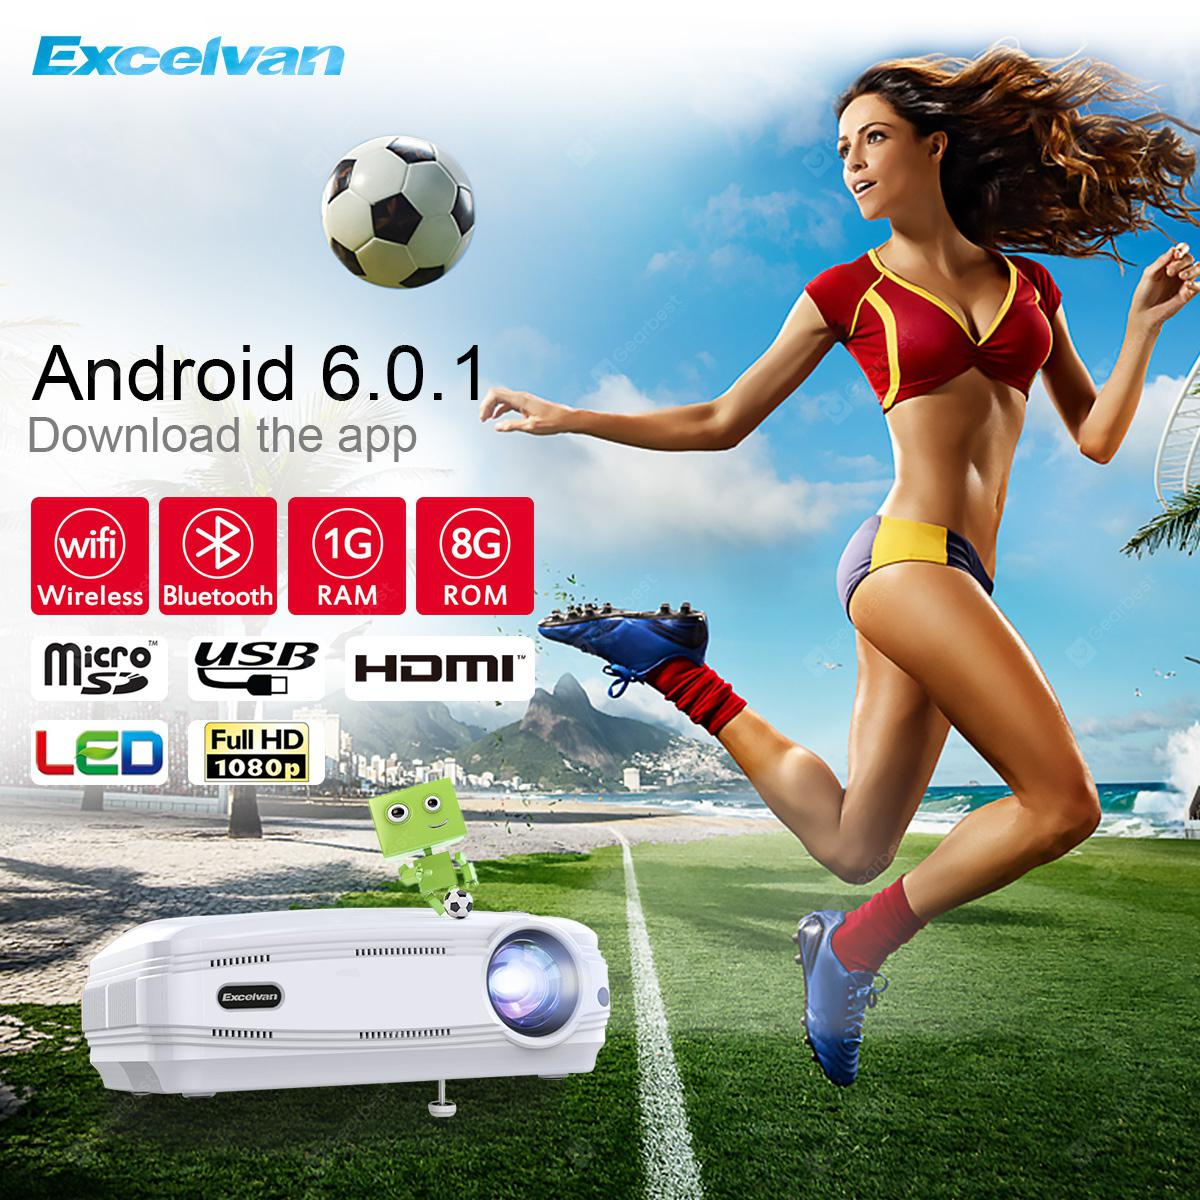 Excelvan BL-59 6.0.1 3200 Android luumenit * 1280 768 200 Inch Multimeedia projektor Support Red & Blue 3 1080P WiFi + Bluetooth 1G 8G ATV Outdoor Movie Game kodukino - ELi WHITE